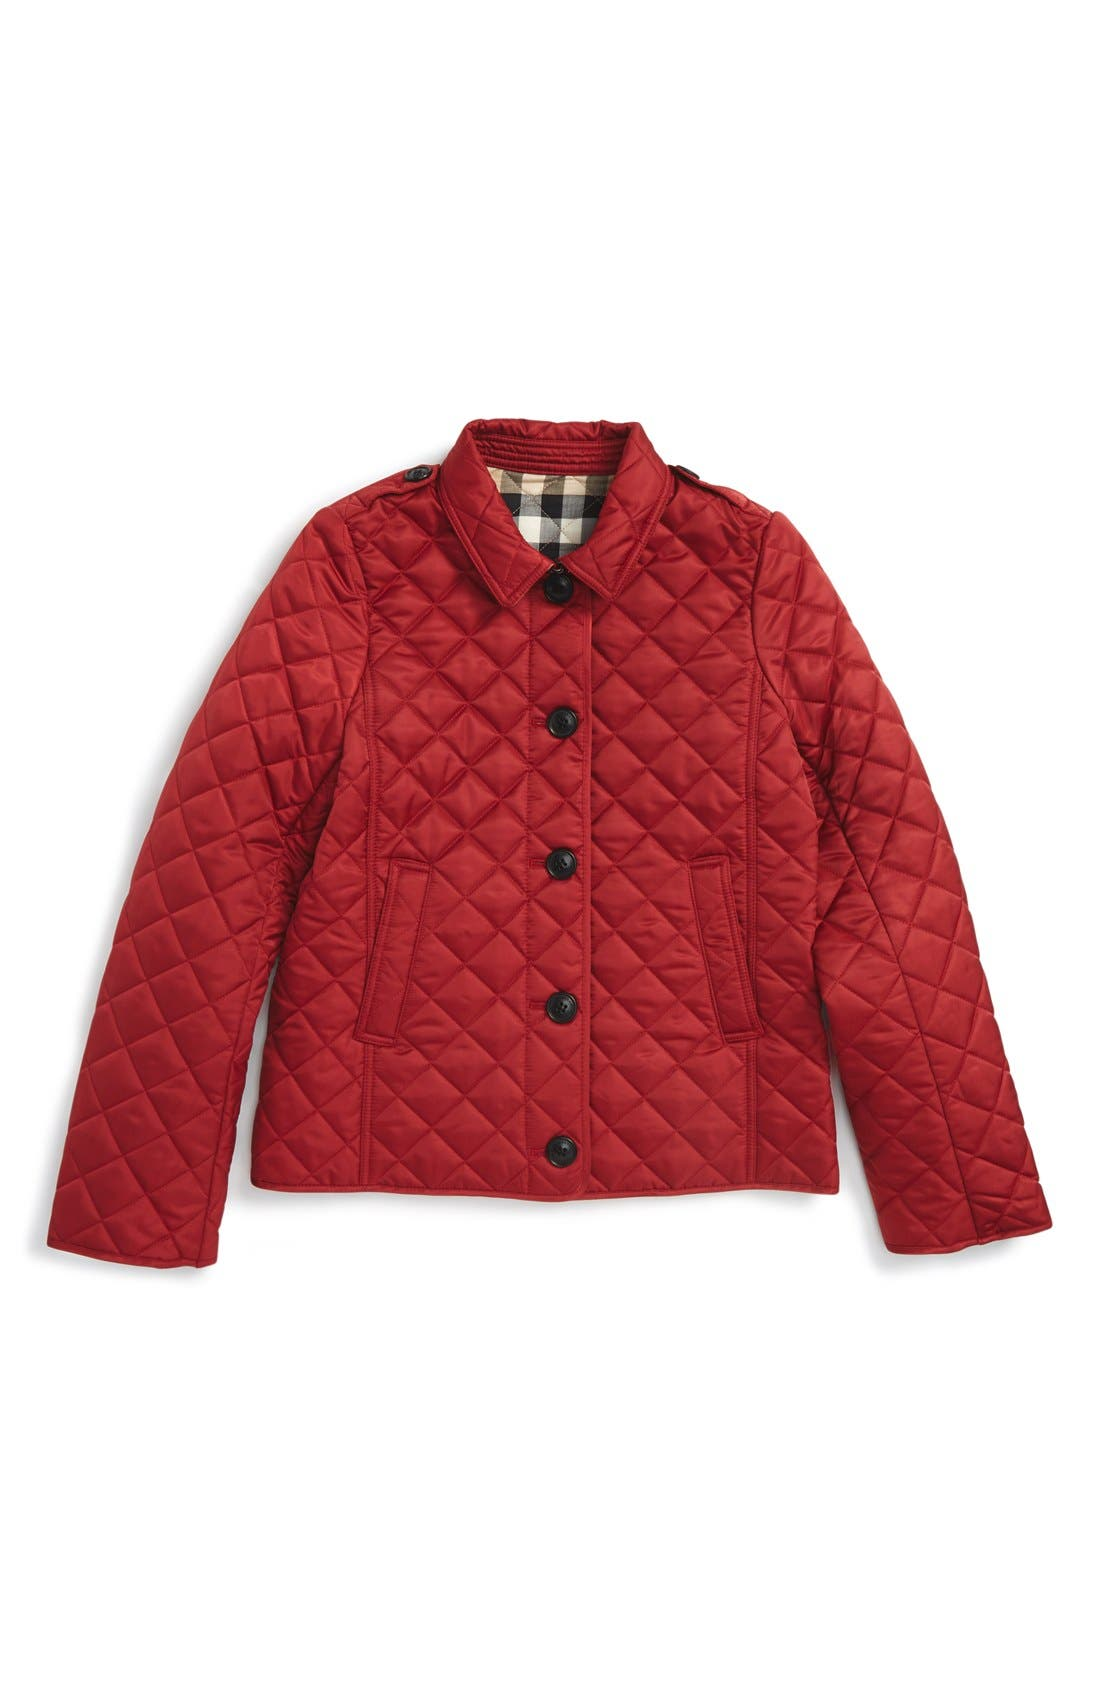 'Mini Ashurst' Quilted Jacket,                         Main,                         color,